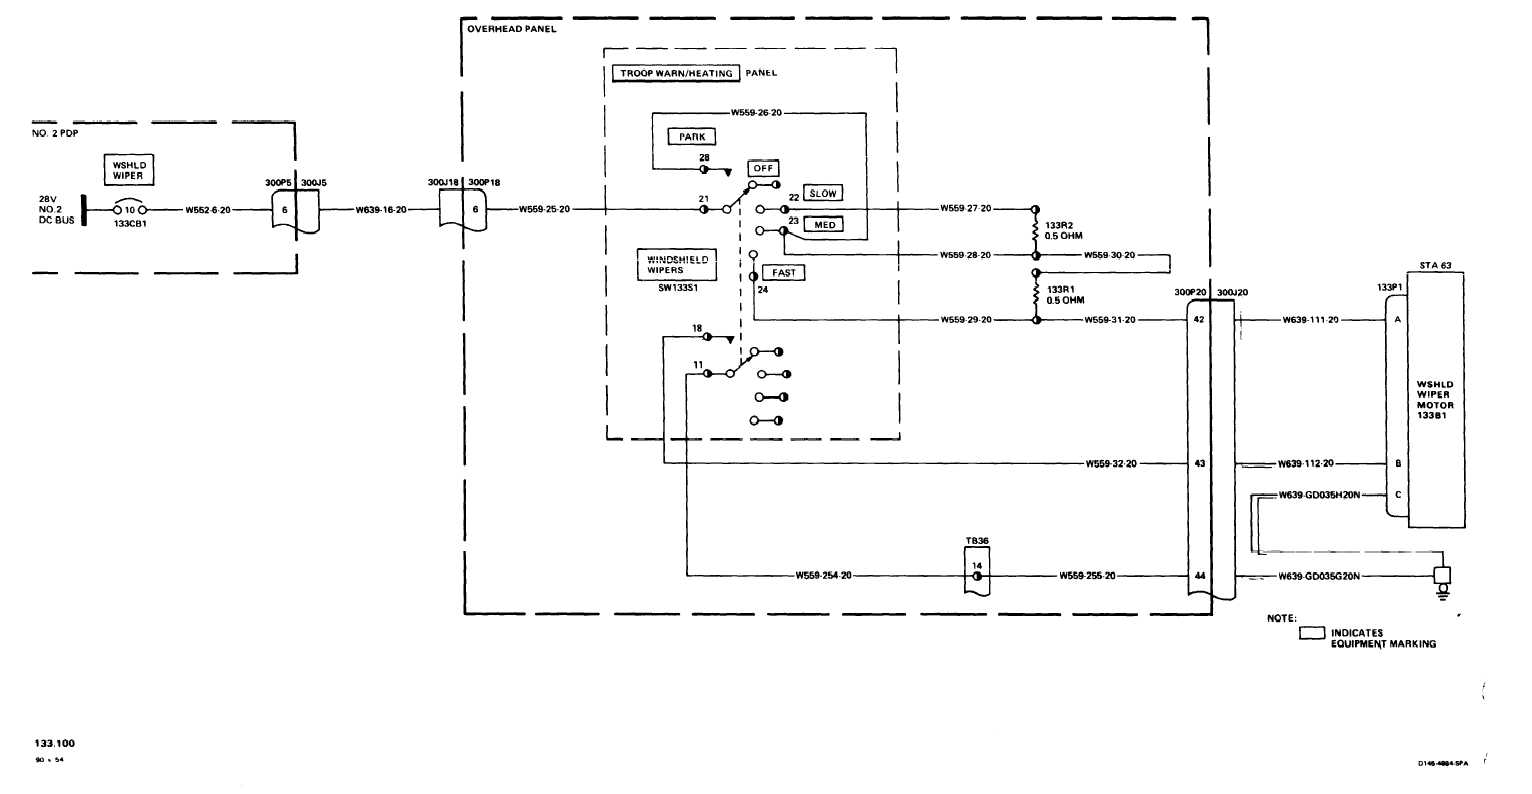 99 Dodge Wiper Motor Wiring Diagram - Wiring Diagram Online on dodge pickup wiring diagram, dodge ram electrical diagram, dodge ignition wiring diagram, 1984 dodge d150 wiring diagram, 01 dodge ram water pump, 1985 dodge d150 wiring diagram, 01 kia rio wiring diagram, 01 dodge ram firing order, 01 dodge ram sub box, dodge ram 1500 diagram, 01 dodge ram seats, 01 dodge ram wiper motor, dodge infinity wiring diagram, 01 dodge ram brakes, 01 ford windstar wiring diagram, 01 dodge ram vacuum routing, 01 mitsubishi eclipse wiring diagram, 01 opel astra wiring diagram, 01 dodge ram headlights, 01 lincoln continental wiring diagram,